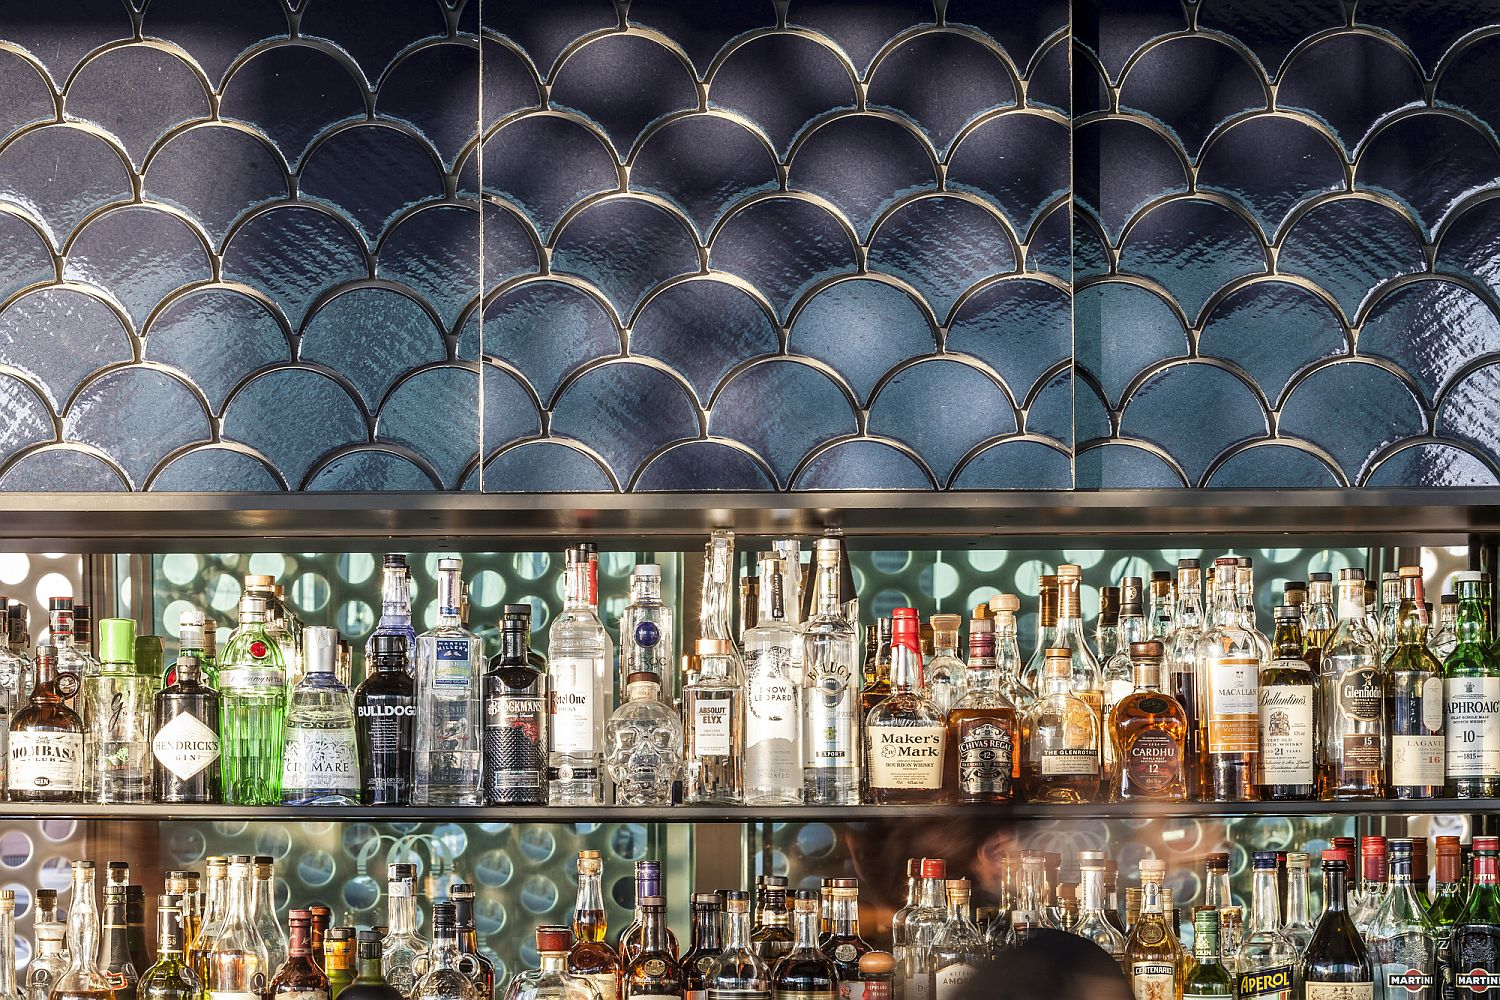 Tilework inside the bar is inspired by the colors of the ocean